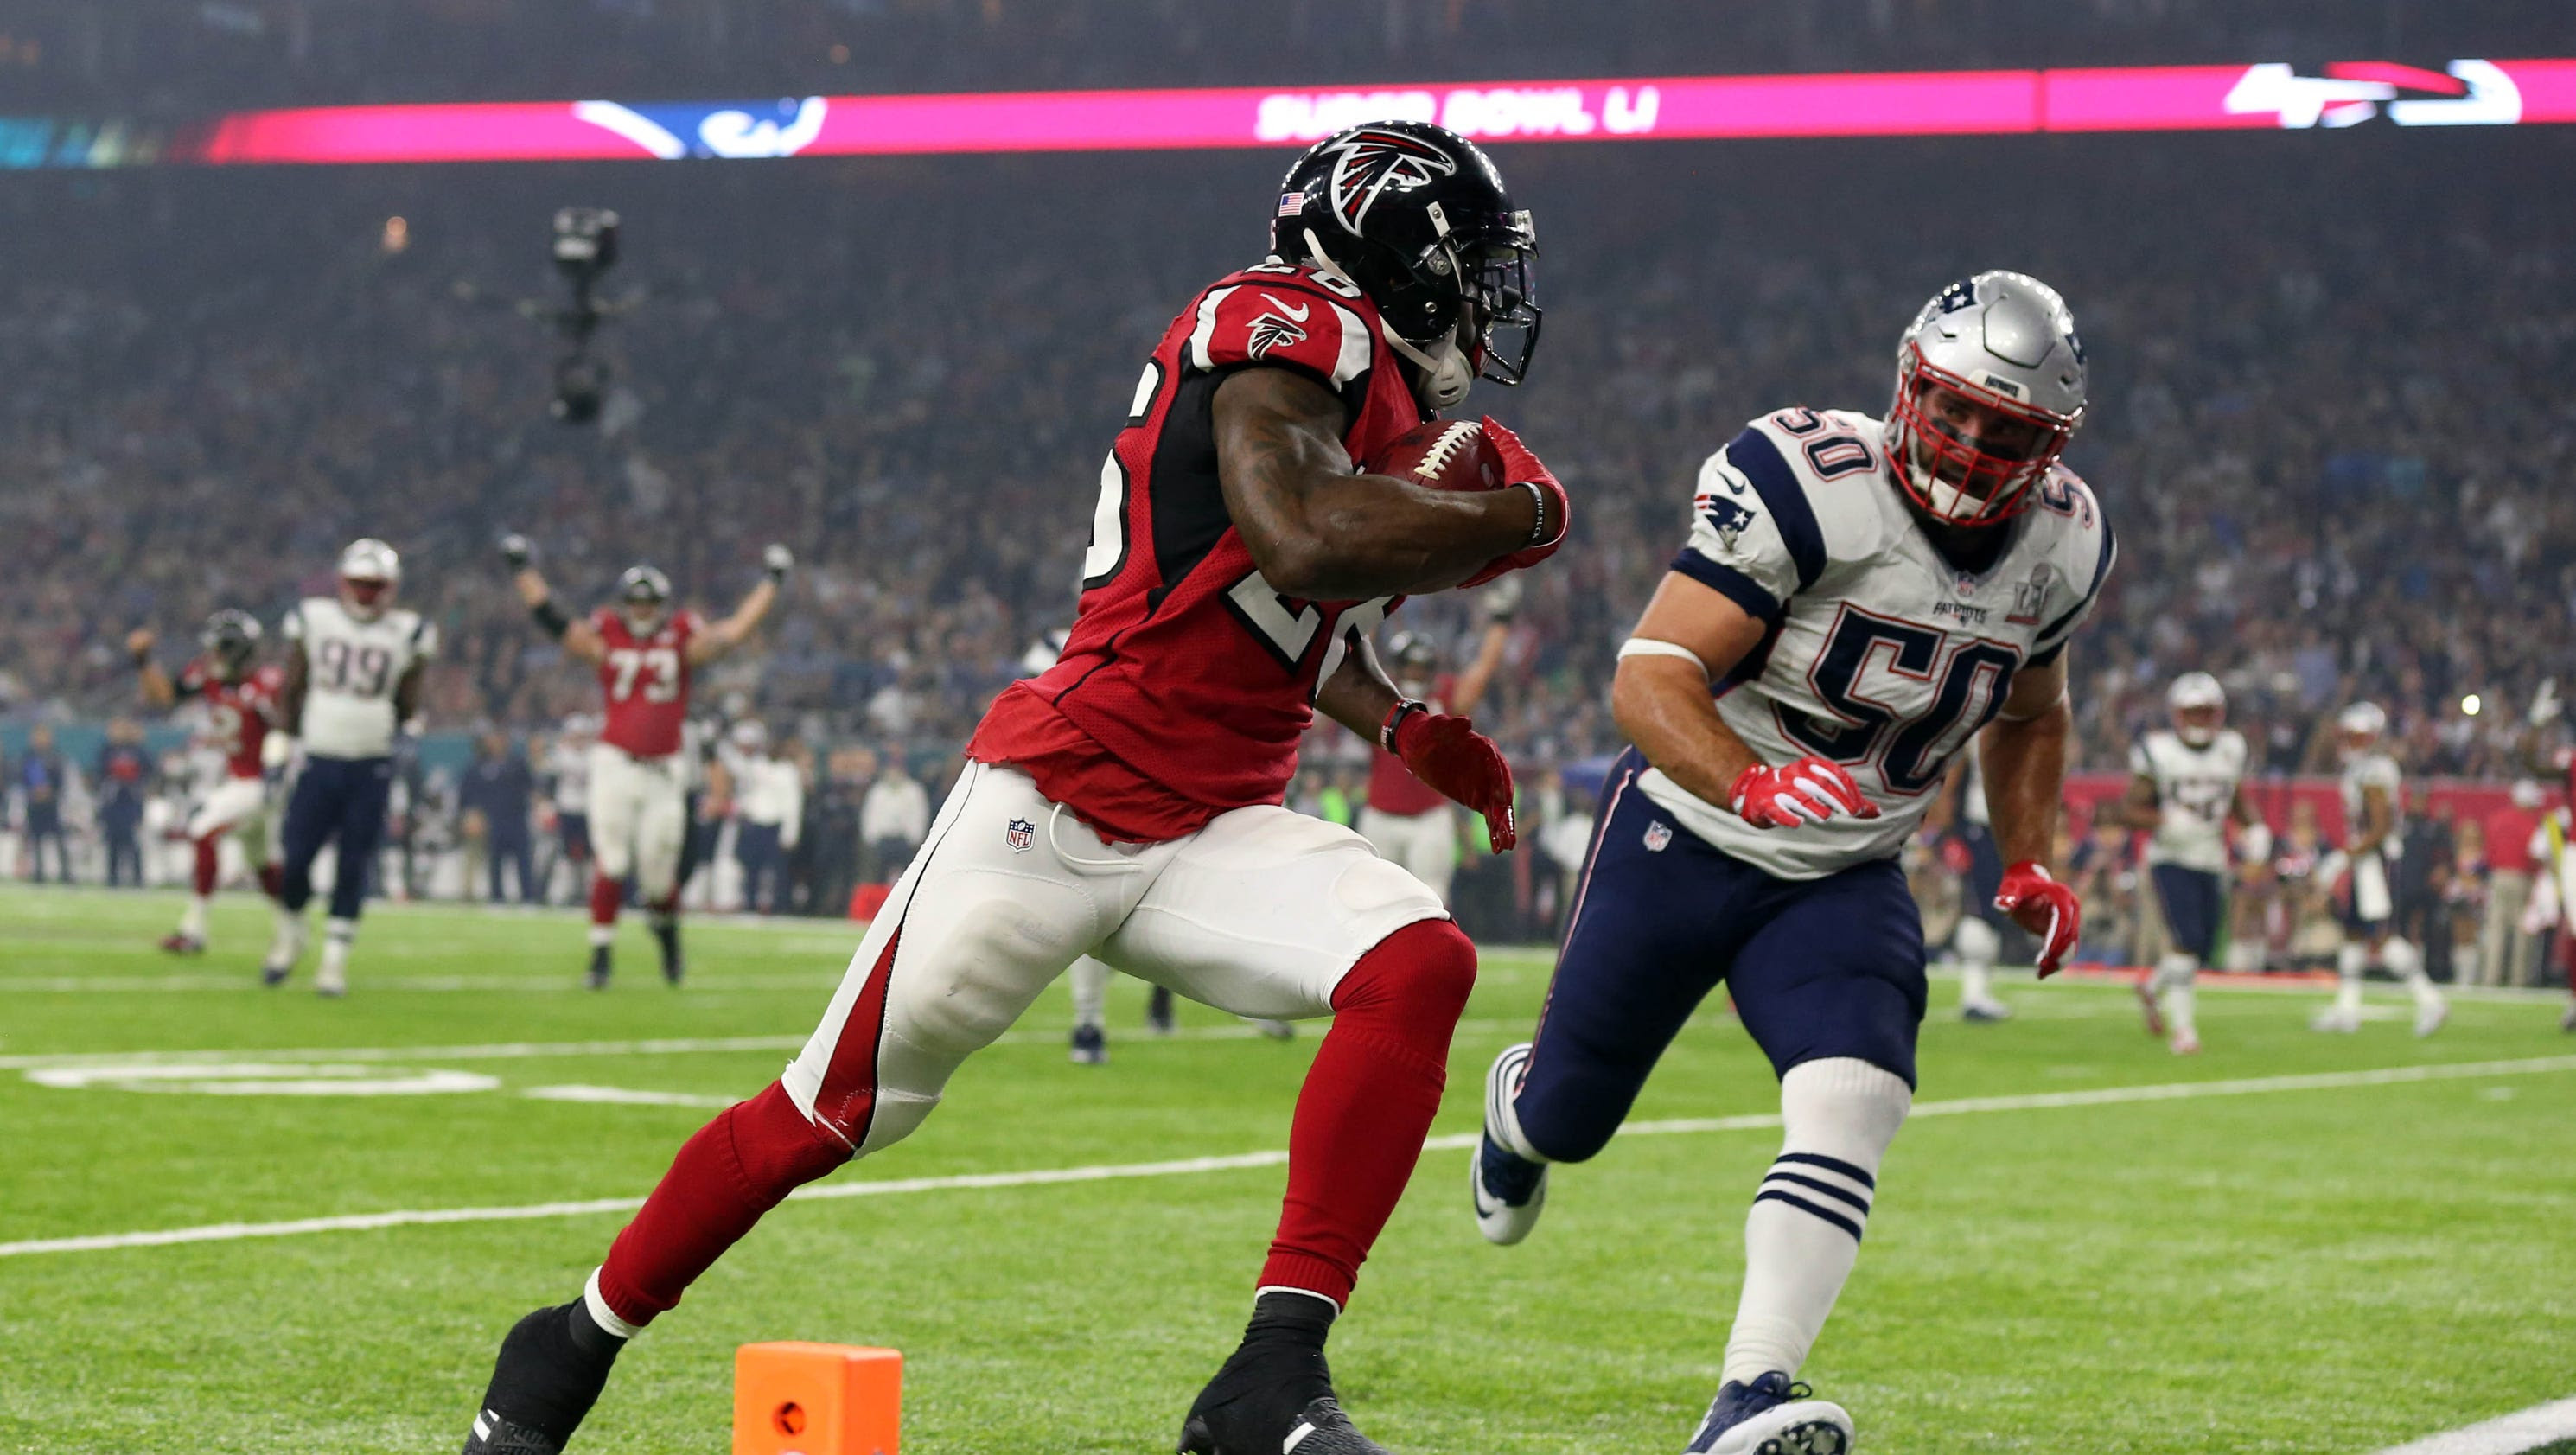 Super Bowl LI analysis: Falcons leading Patriots in second half